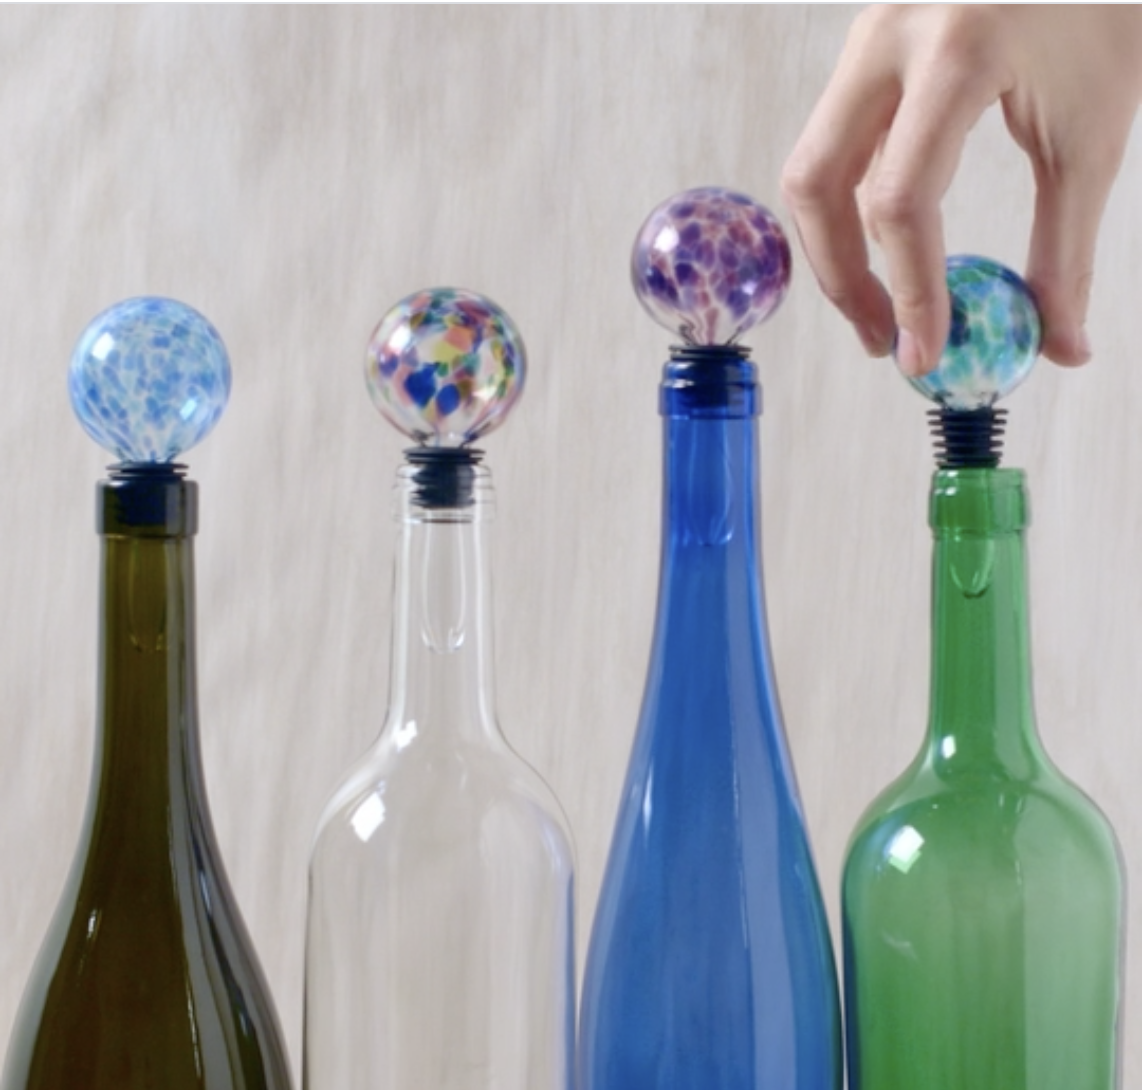 Four handblown wine stoppers in different colors